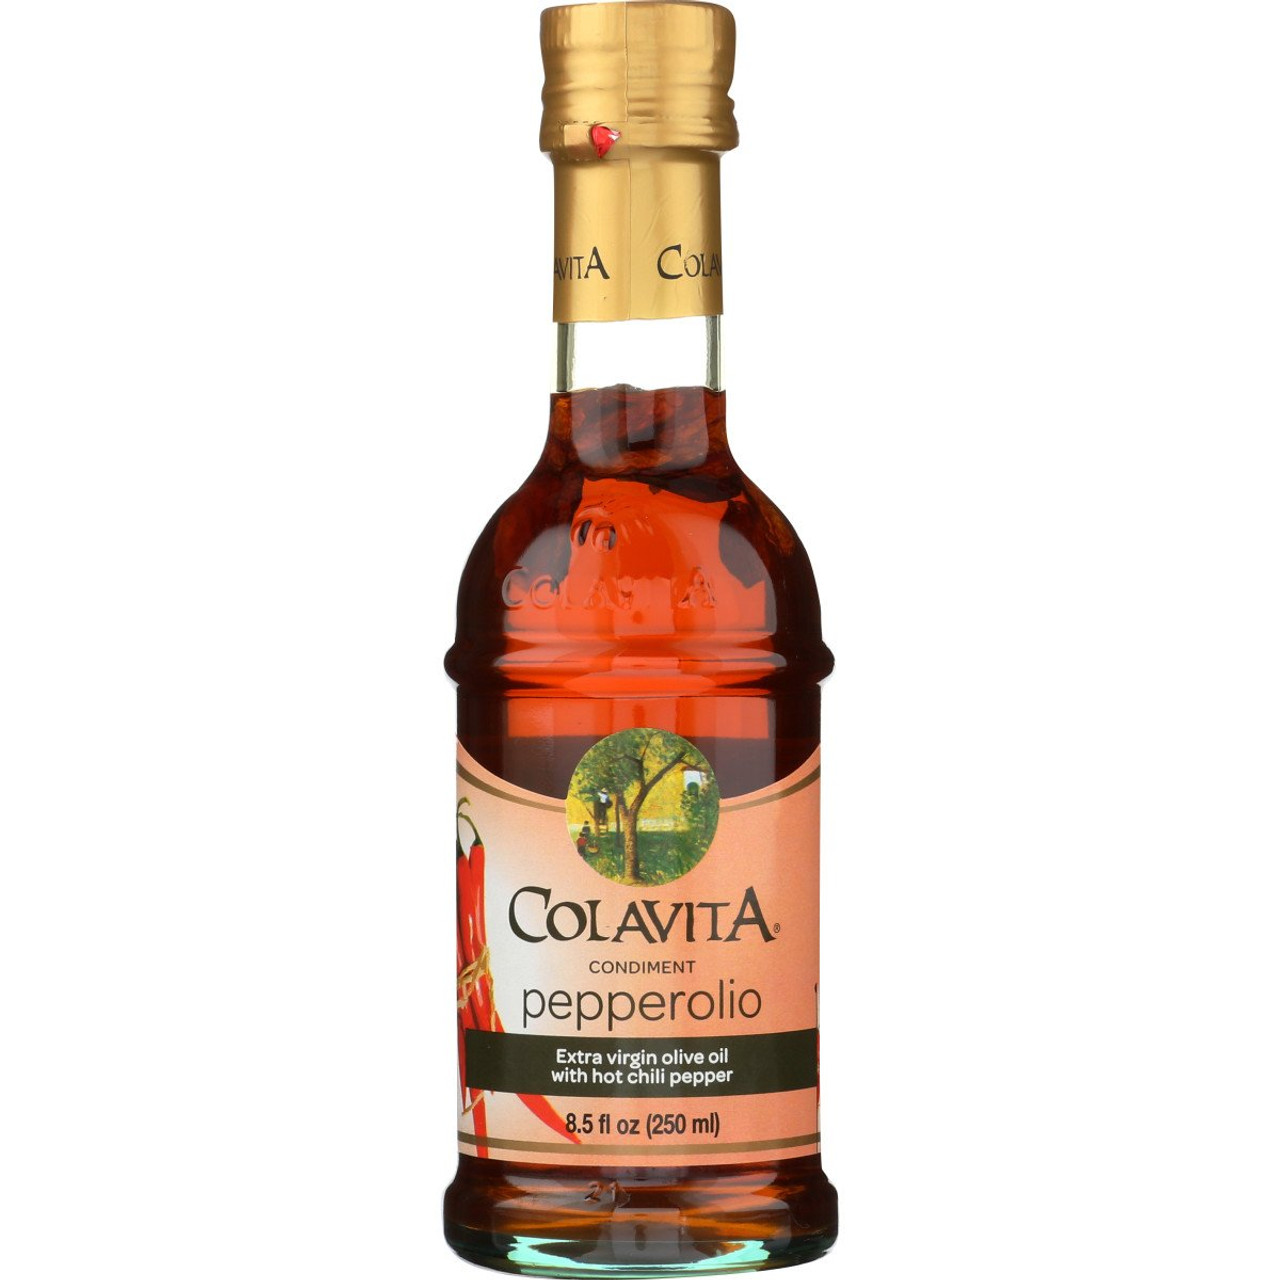 Colavita Extra Virgin Olive Oil infused with Pepper Essence